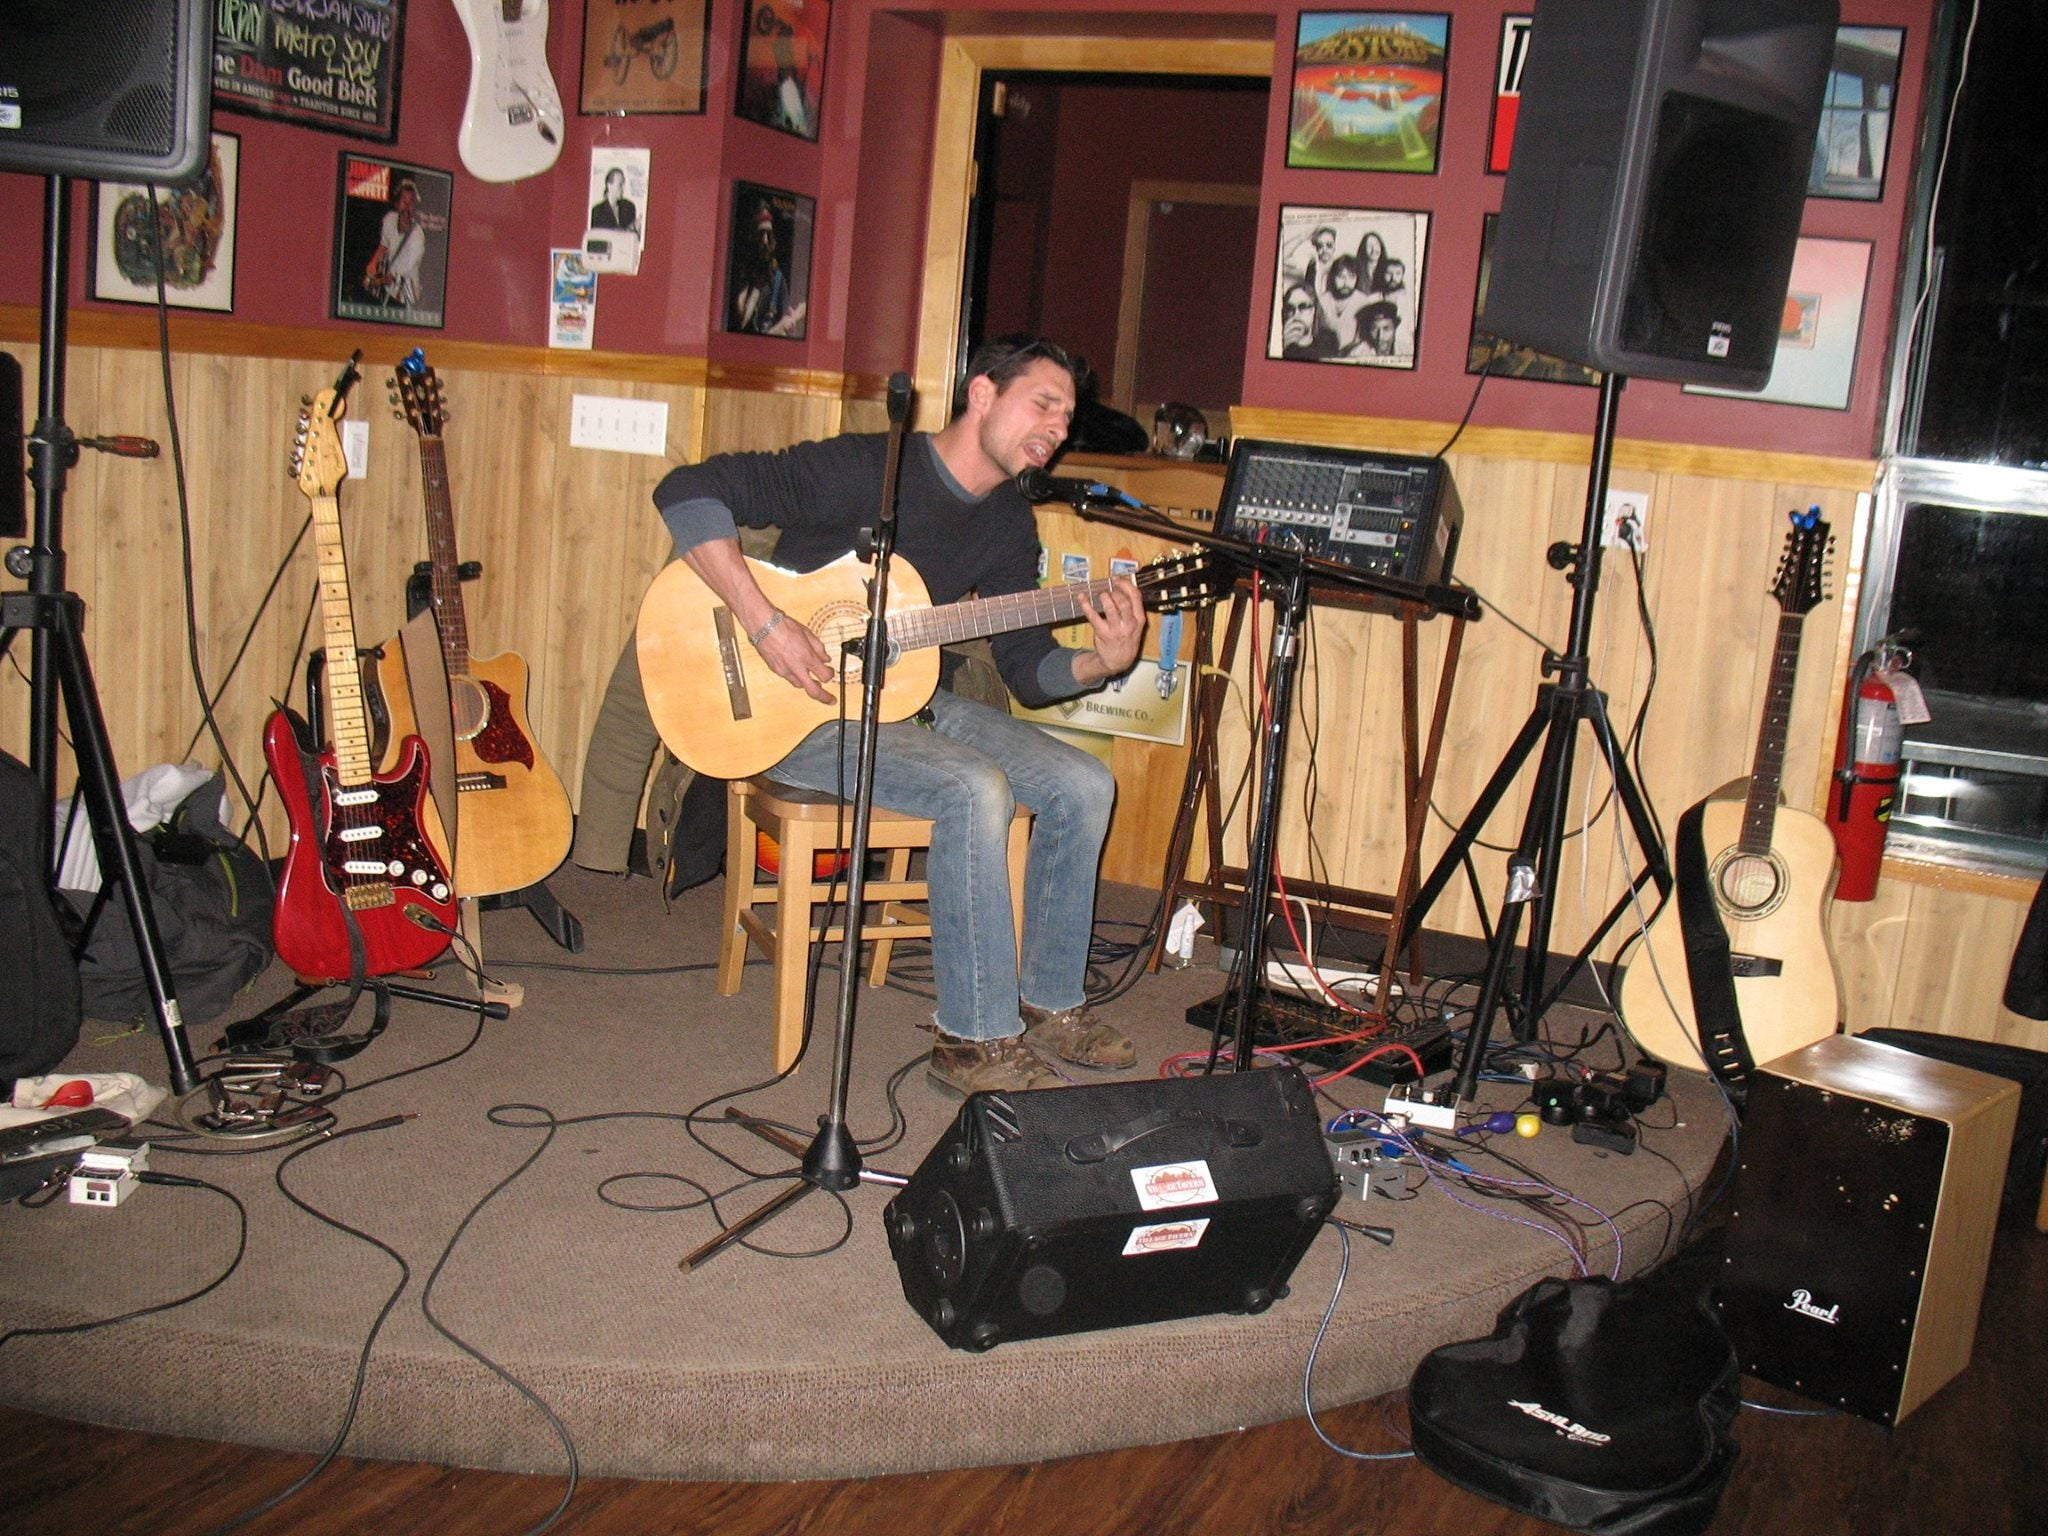 Open Mic Night at The Village Tavern